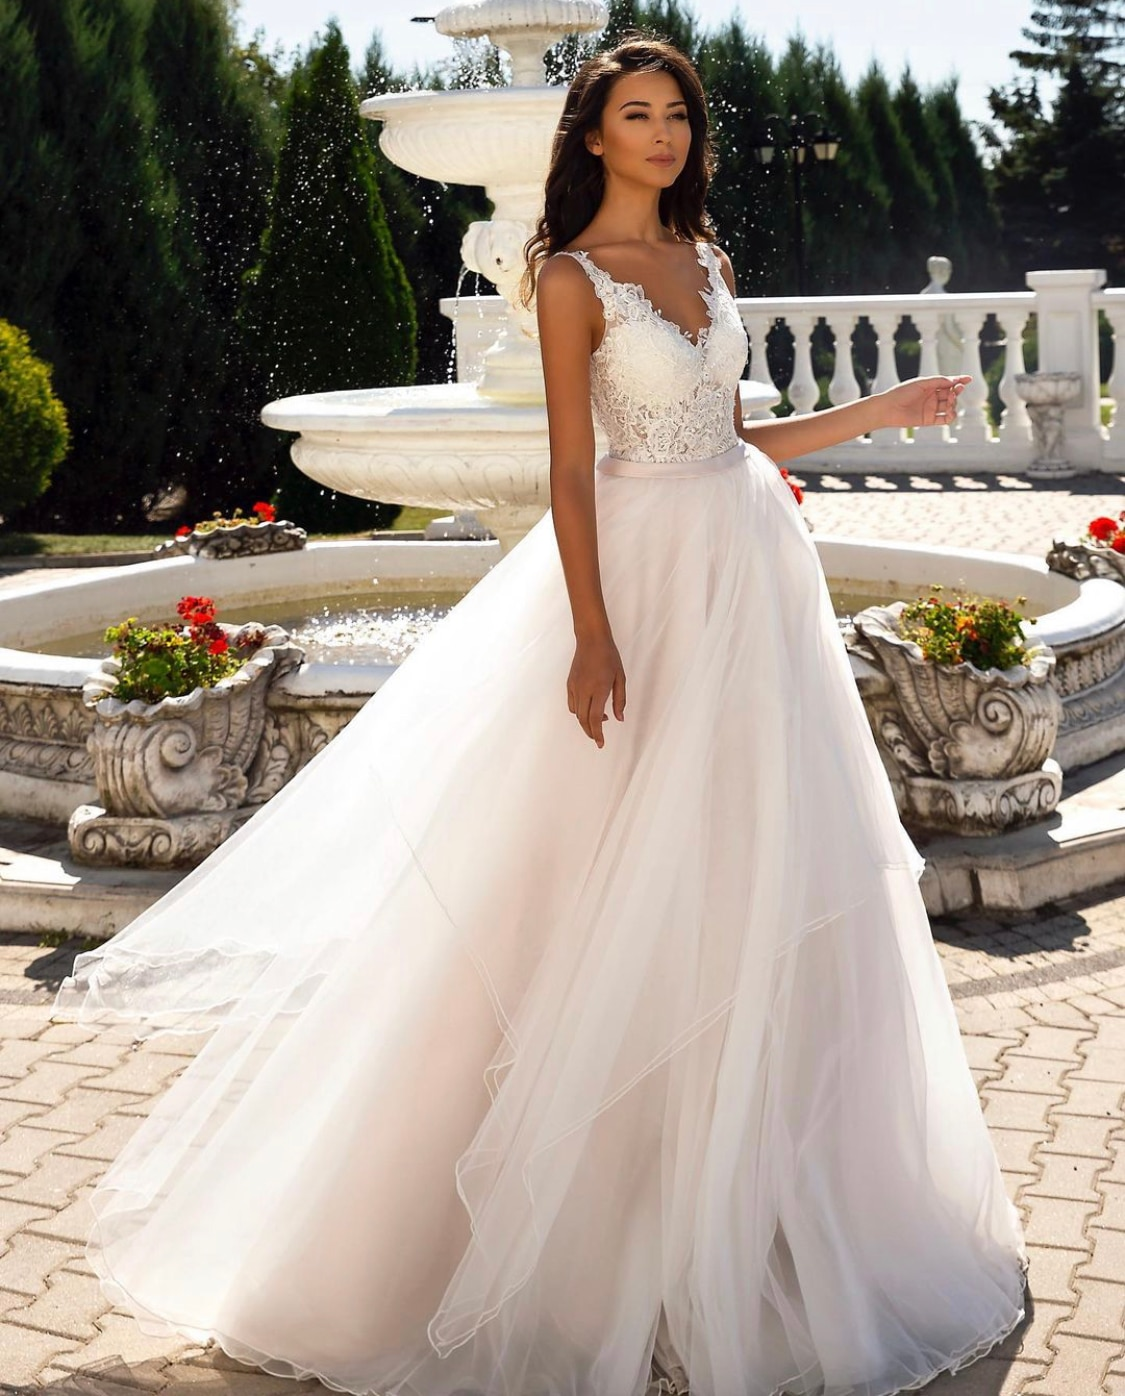 Promo Wedding Dress A-Line V-Neck Tank Lace Appliques Sequined Beads Backless Bow Sashes Floor Length Sweep Train Bride Gown New